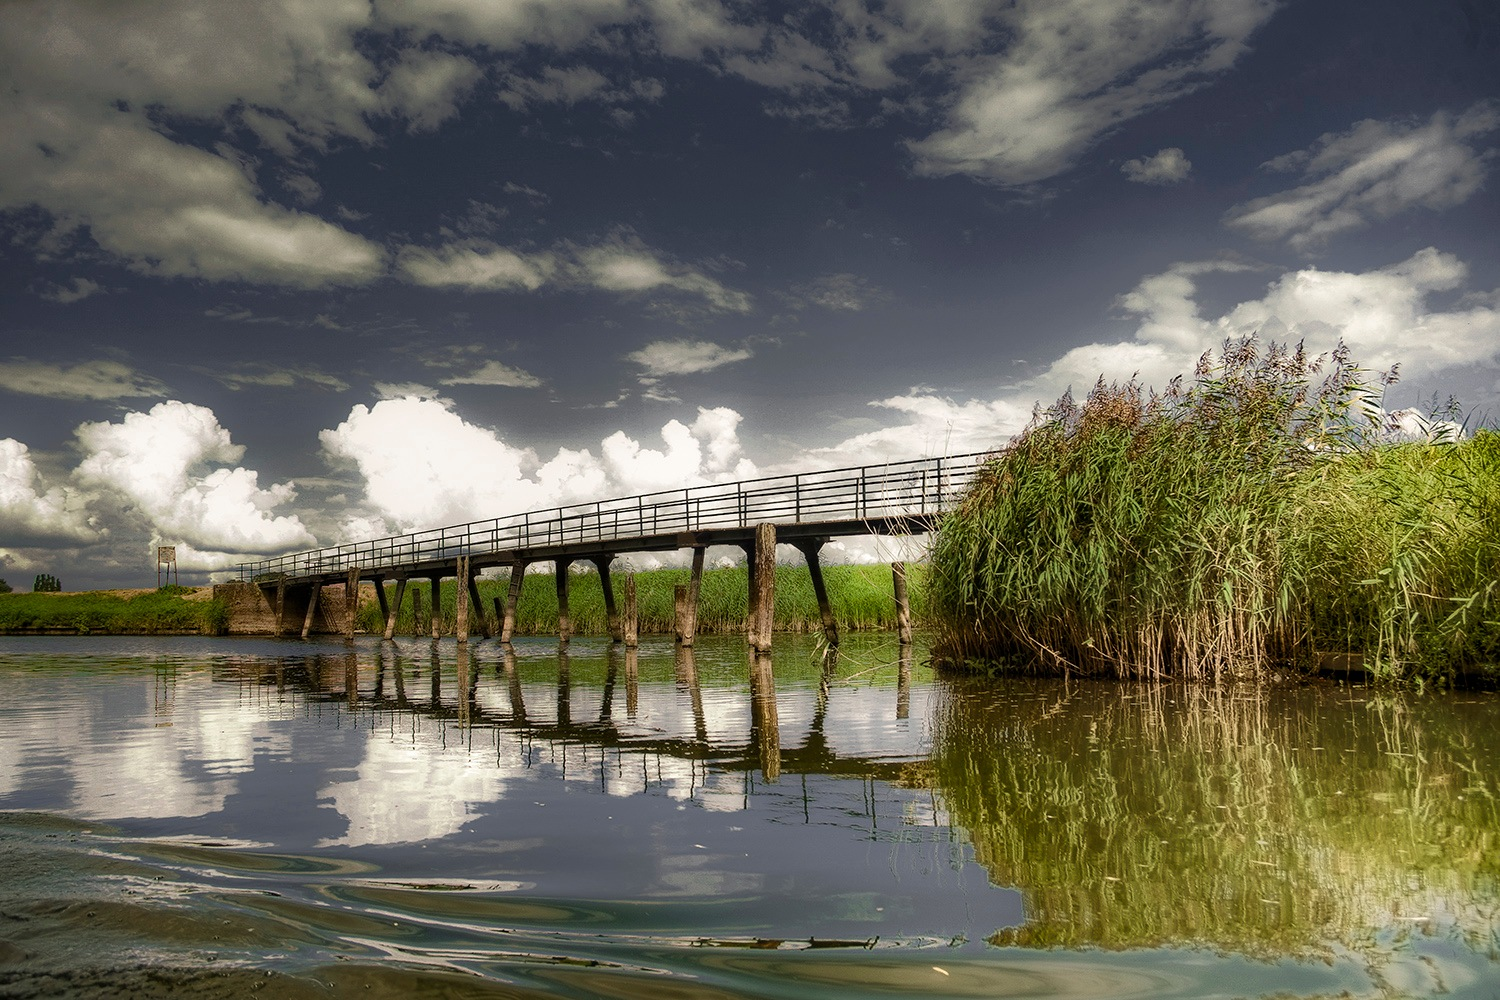 Bridge by harald.seiwert